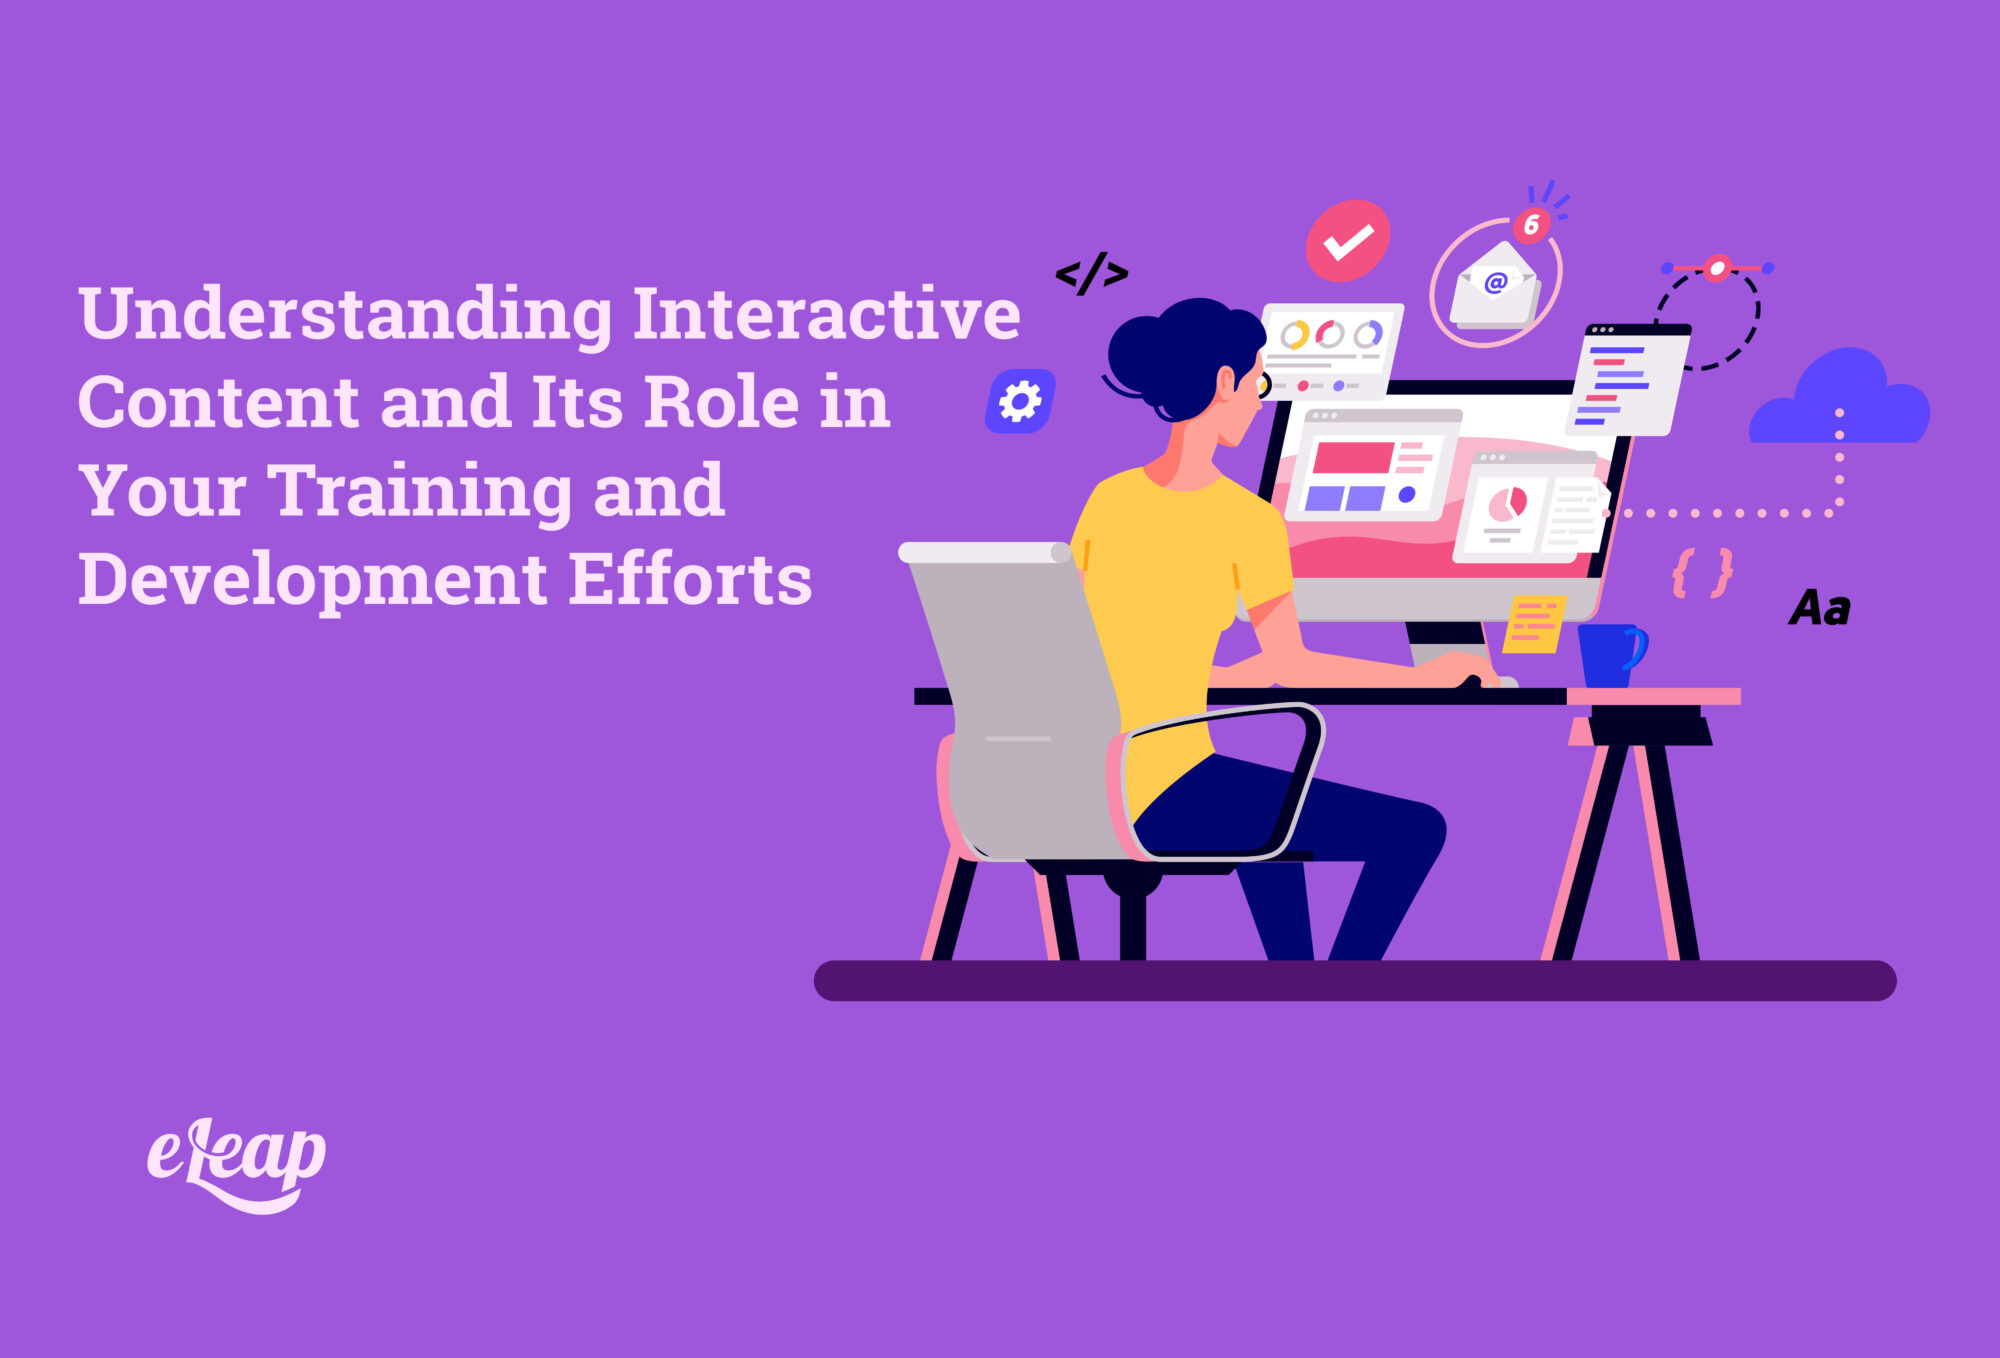 Understanding Interactive Content and Its Role in Your Training and Development Efforts